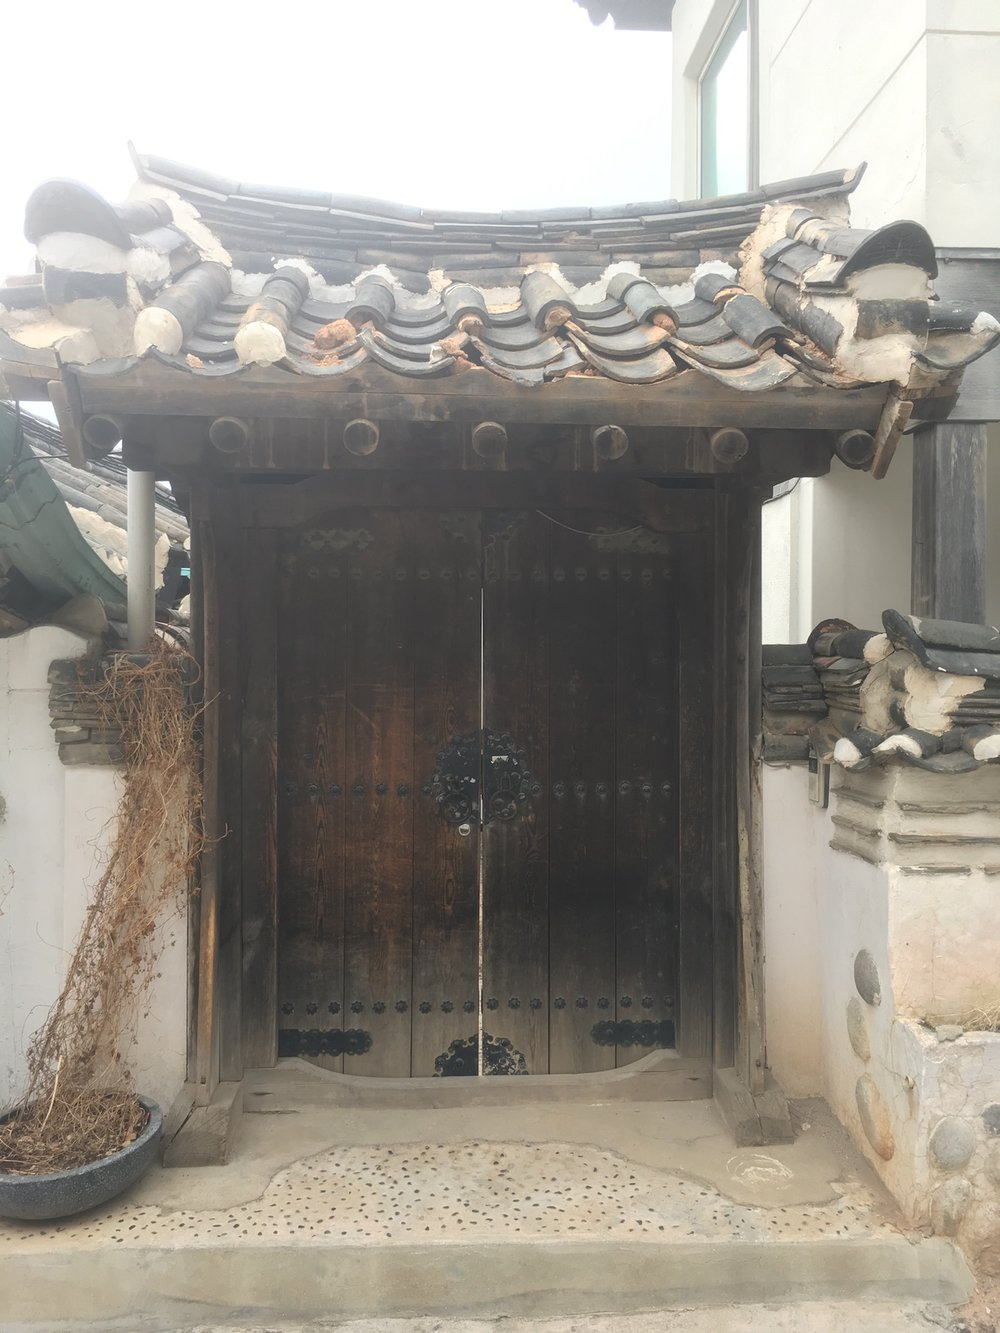 Door in Bukchon Hanok Village, over 600 years old